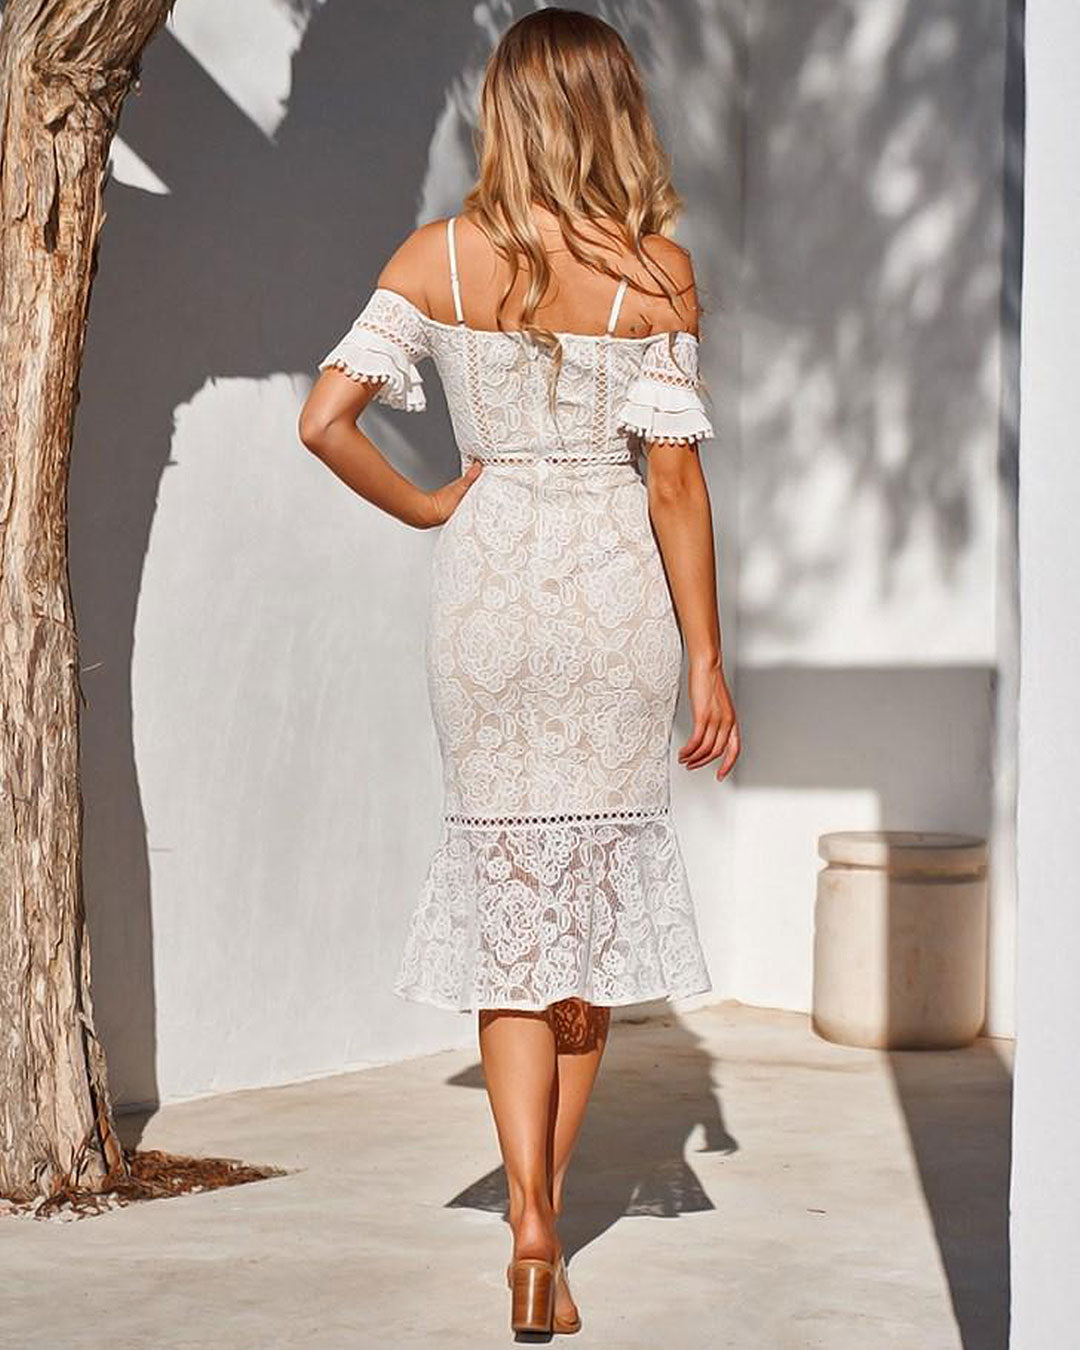 Lace Dresses and Lace Midi Dresses Online in Australia